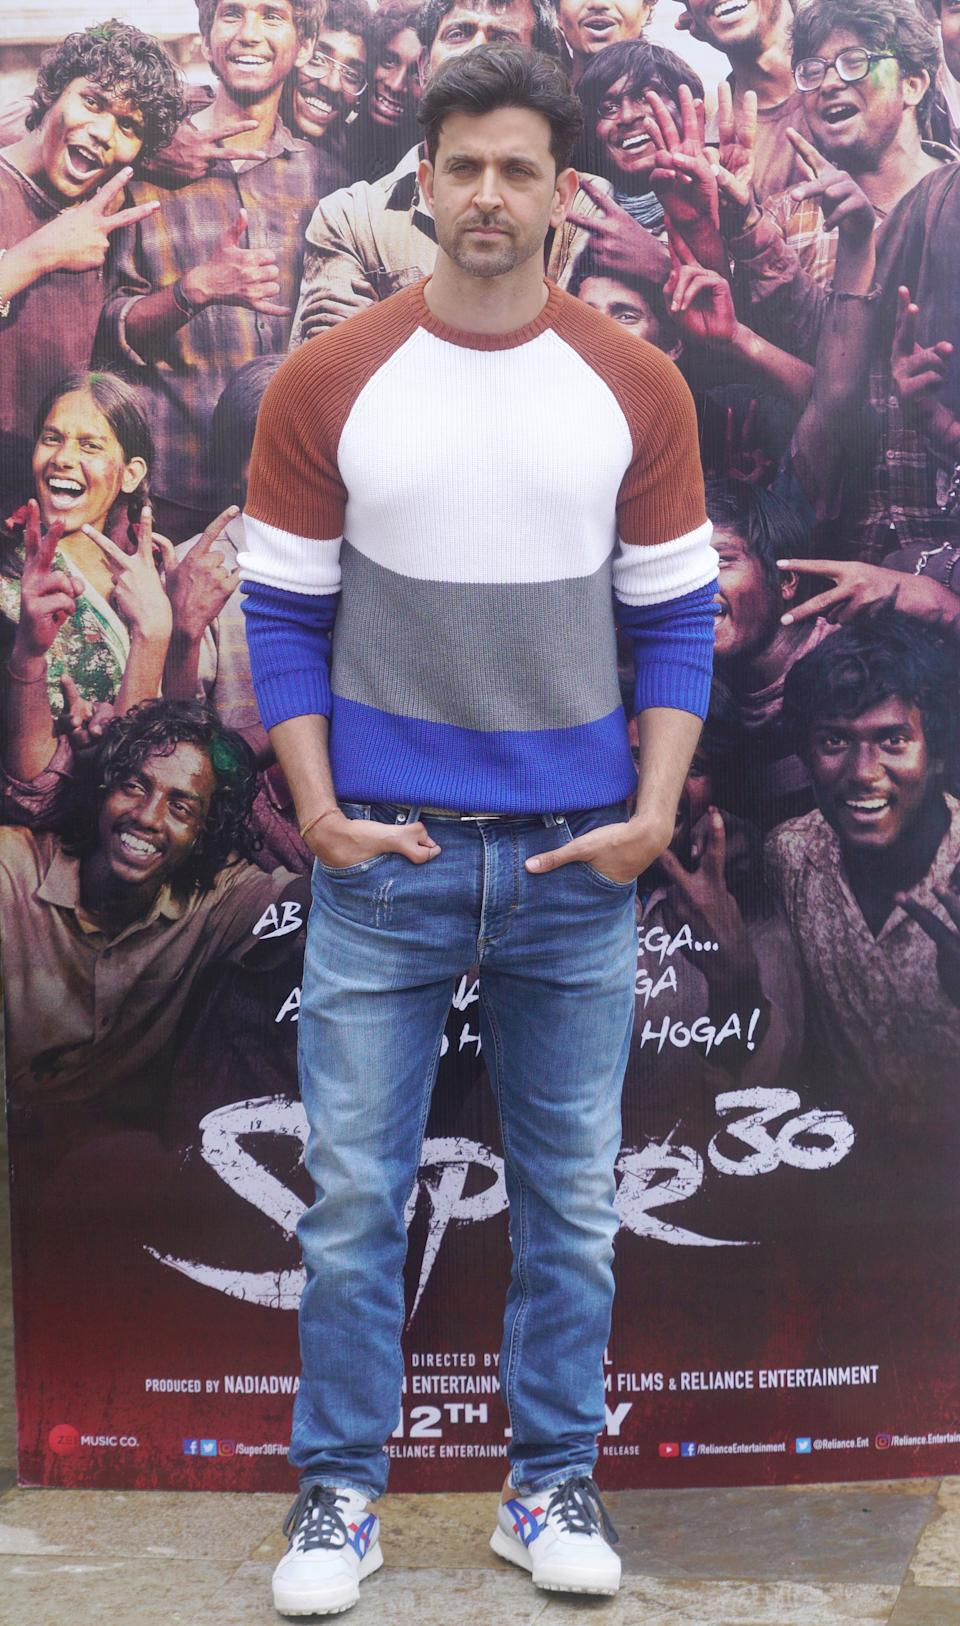 By now we know that Hrithik does casual looks very well. This look too may be pretty basic but it is his choice of wearing a colour blocked t-shirt that most people would stay away from. Love the playfulness and youthfulness of this t-shirt.